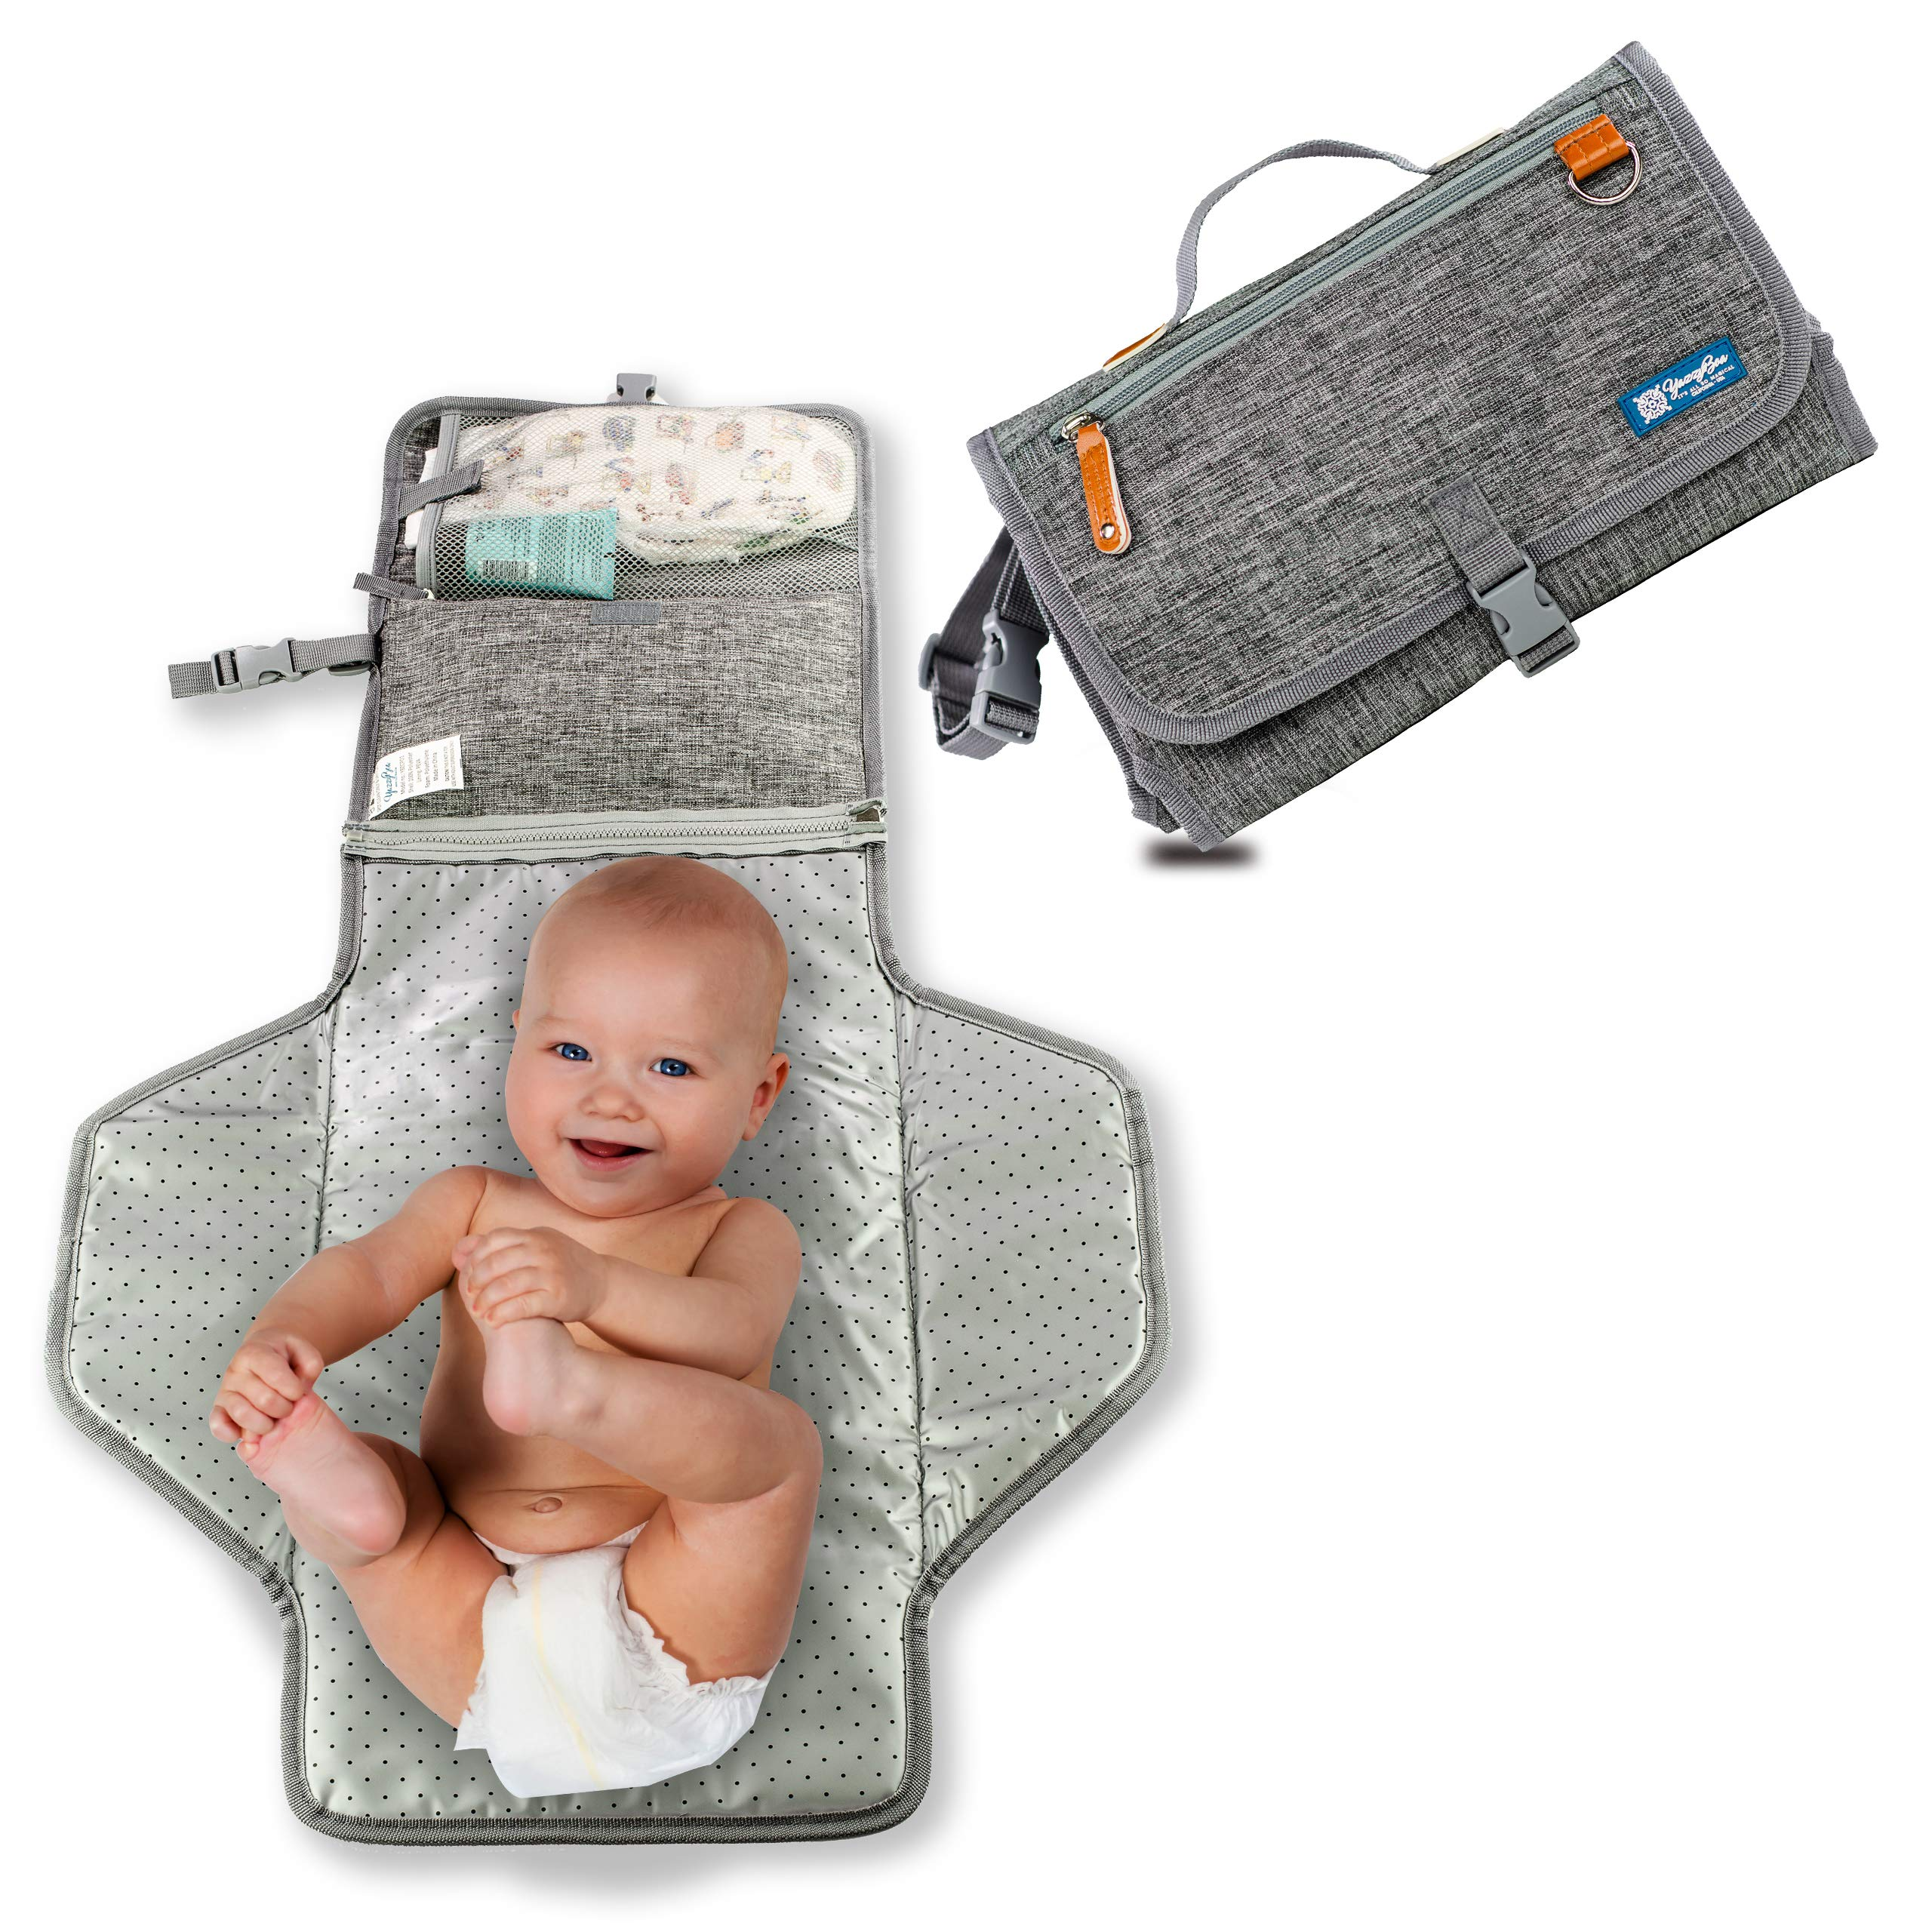 YazzyBoa Portable Changing Pad - Waterproof Baby Changing Mat for Moms and Dads by YazzyBoa